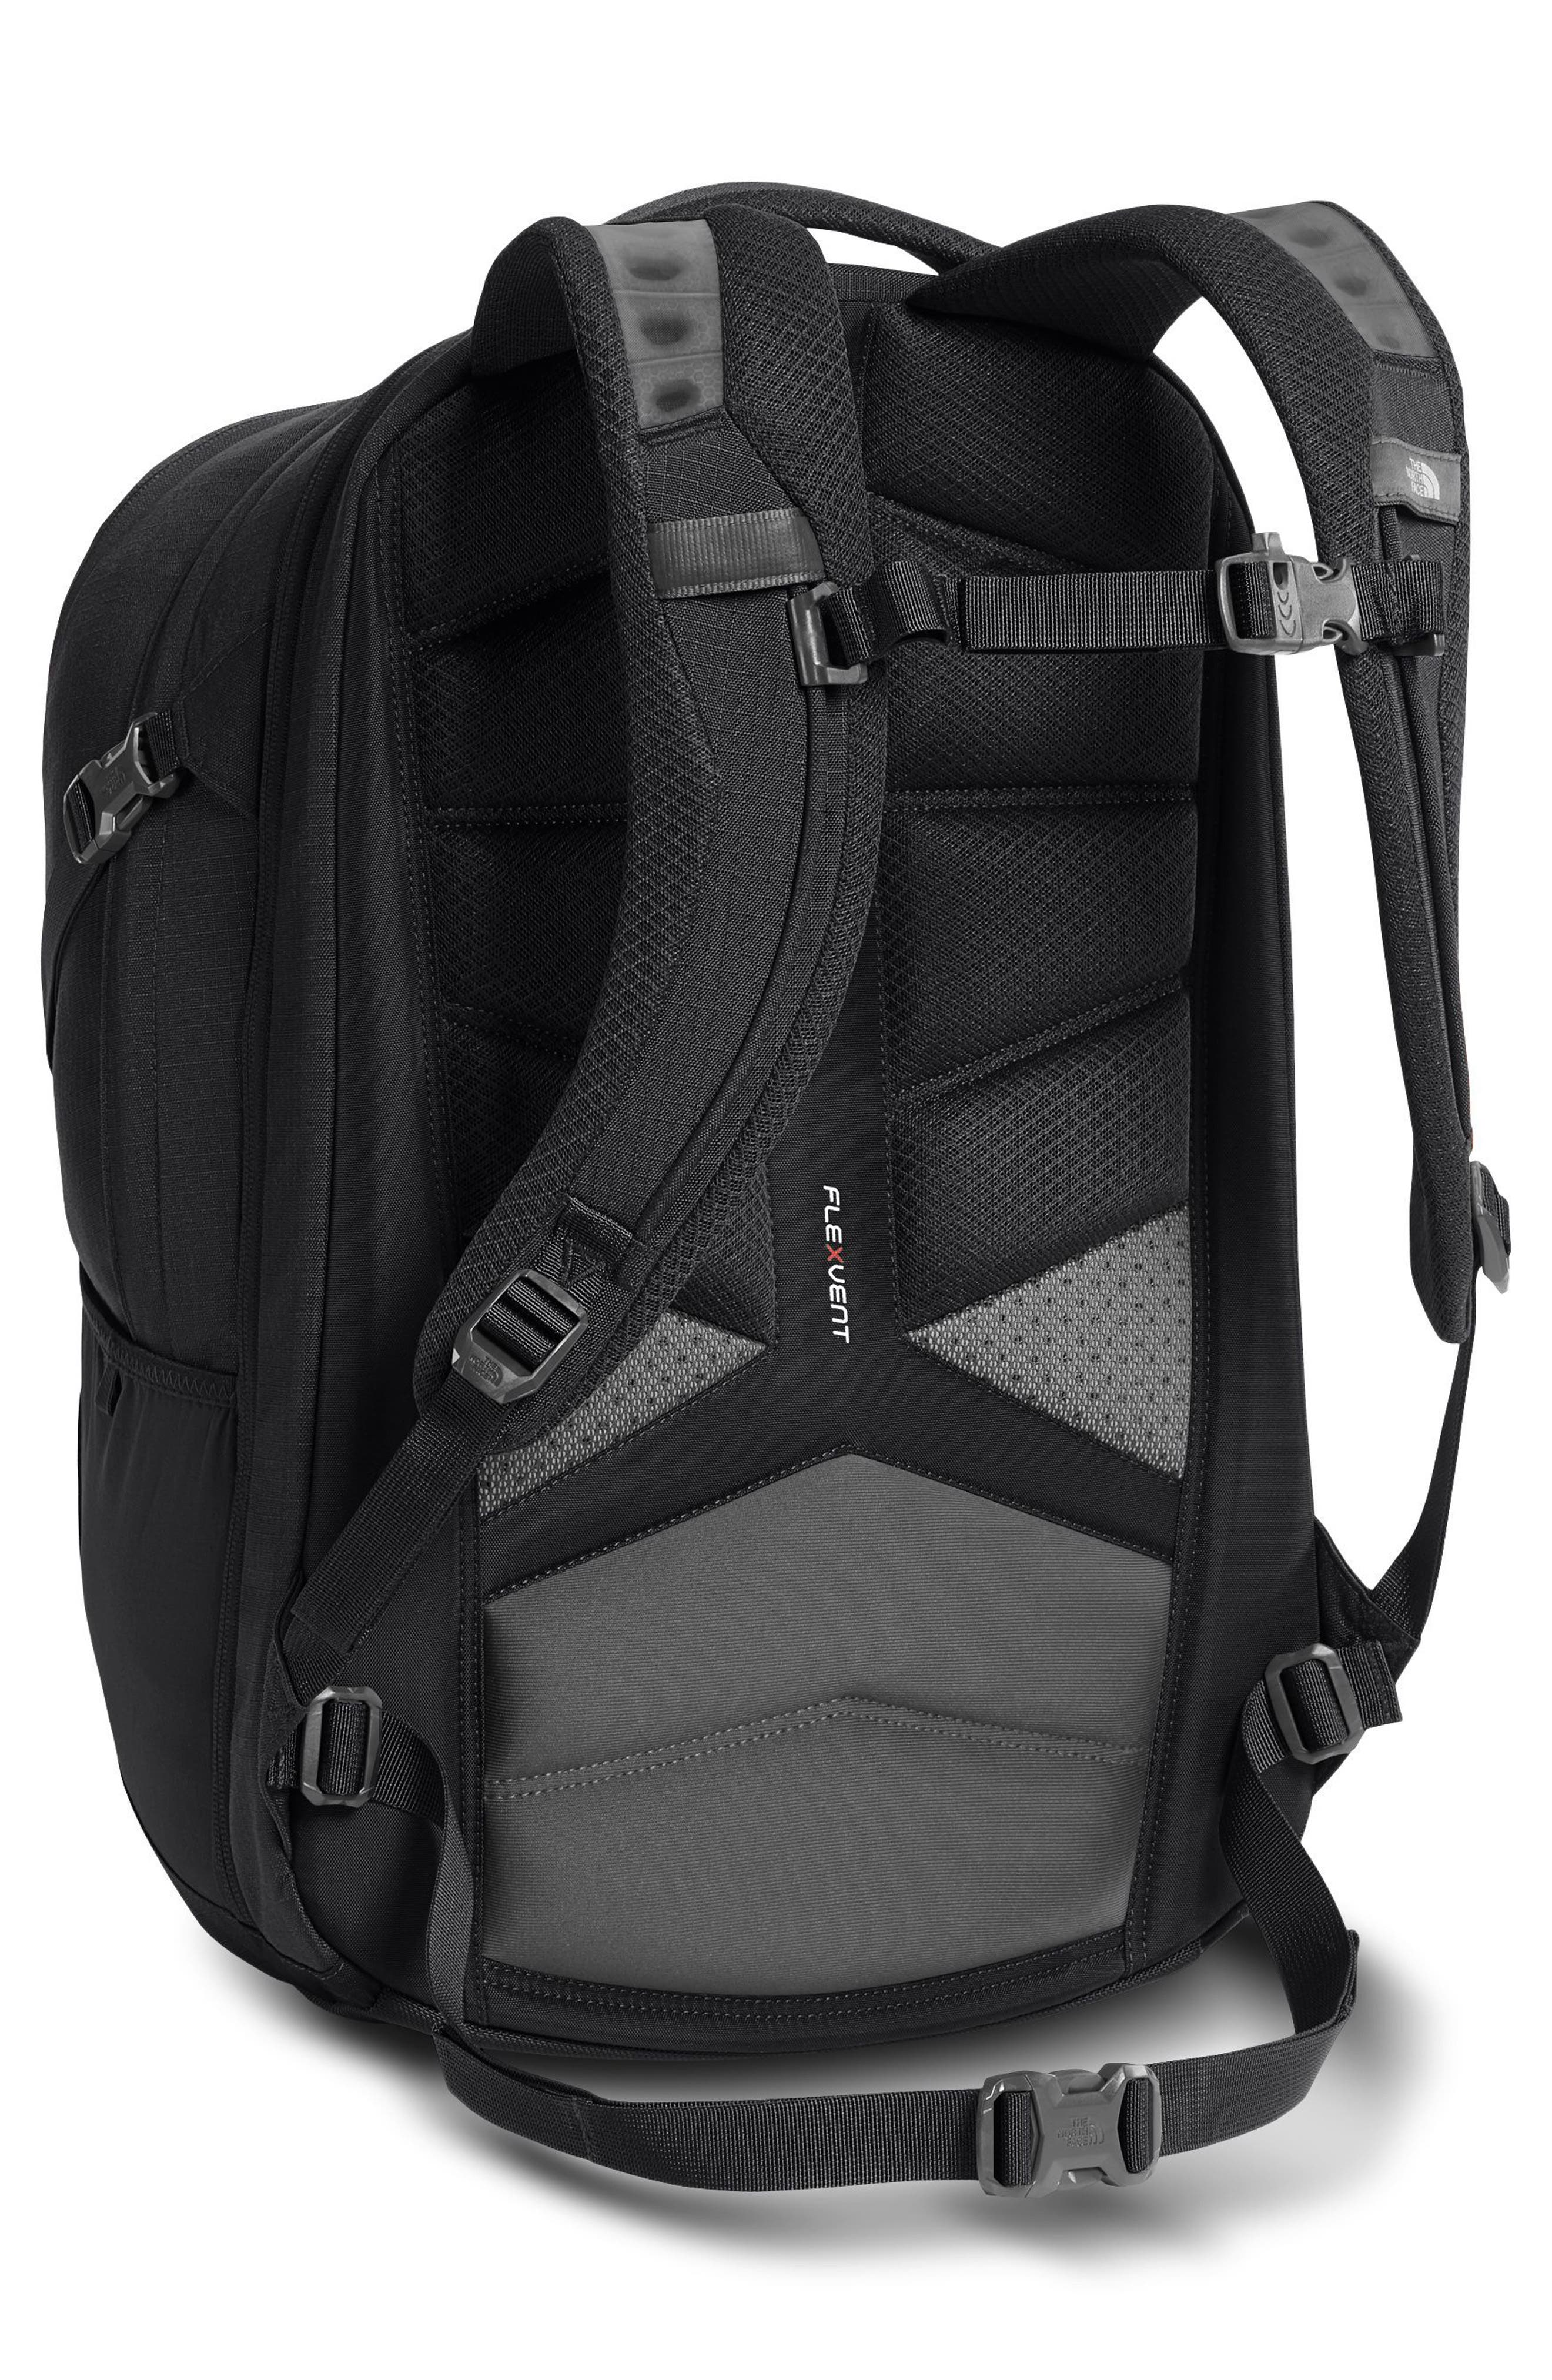 Alternate Image 2  - The North Face 'Surge' Backpack